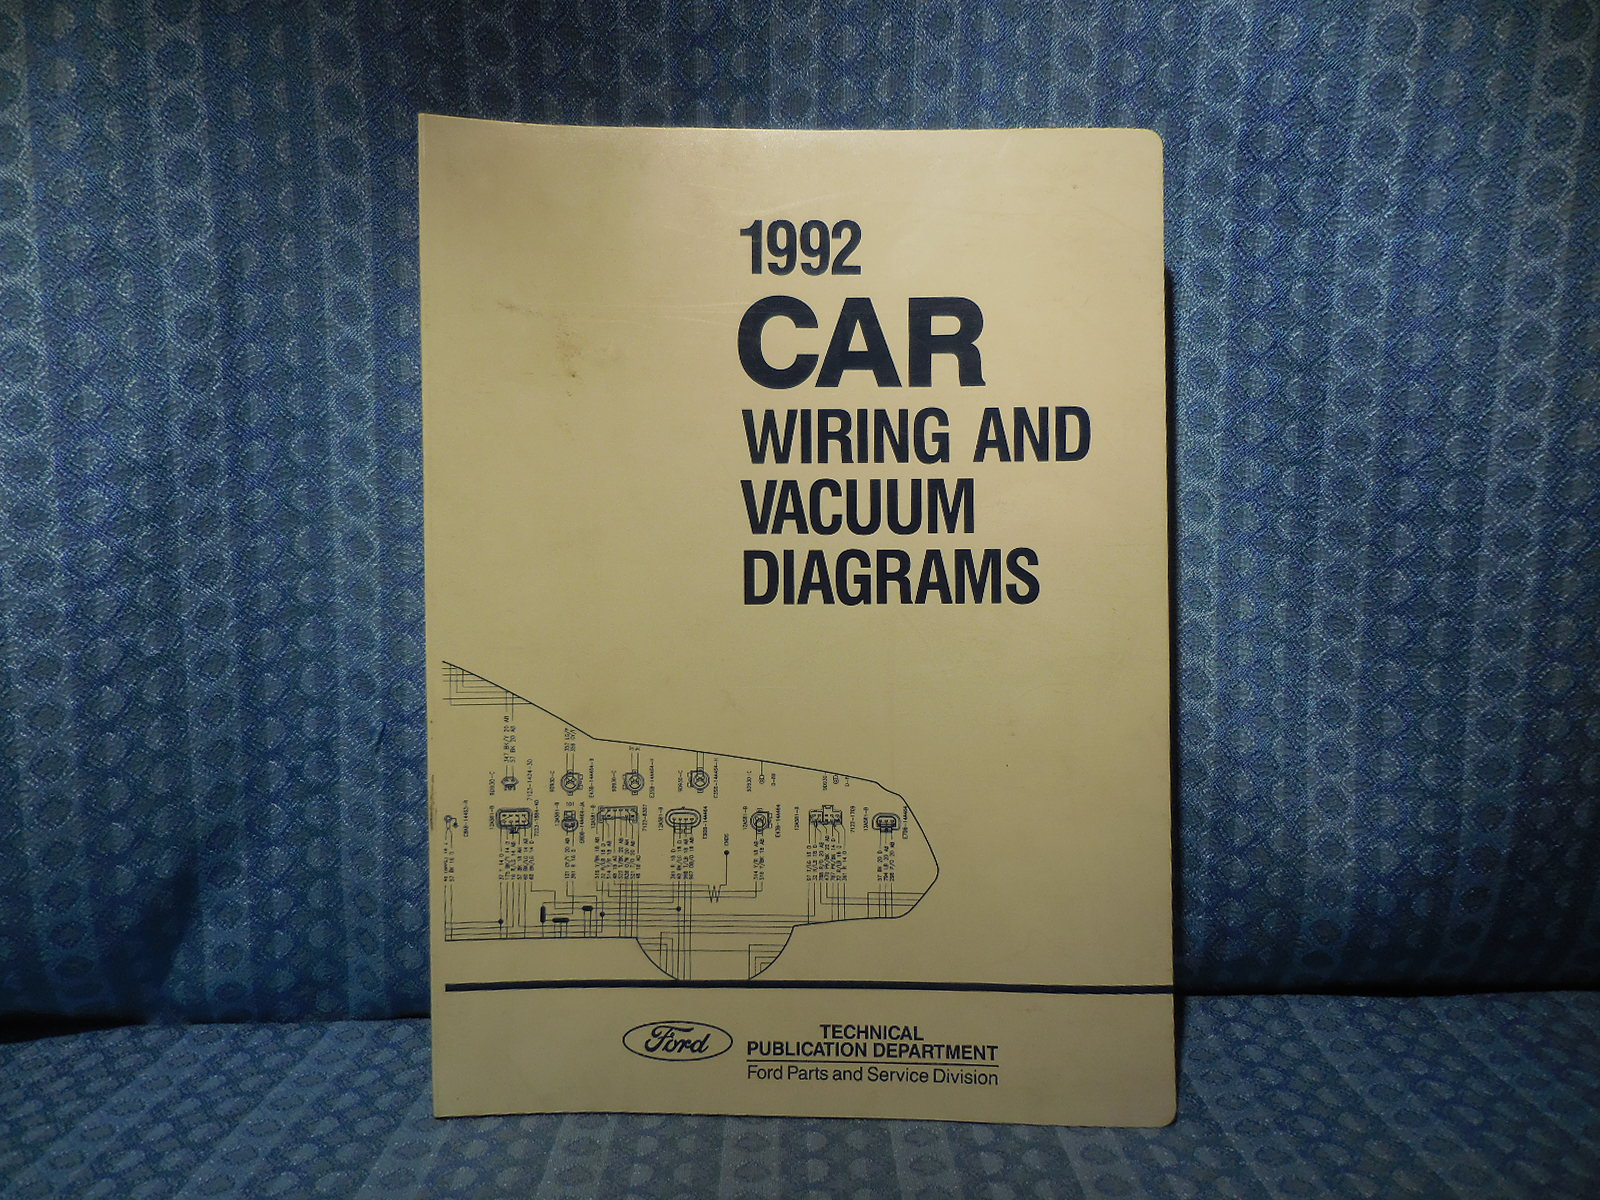 Switch Wiring Diagram Vw Bus Wiring Diagram 73 Vw Wiring Diagrams